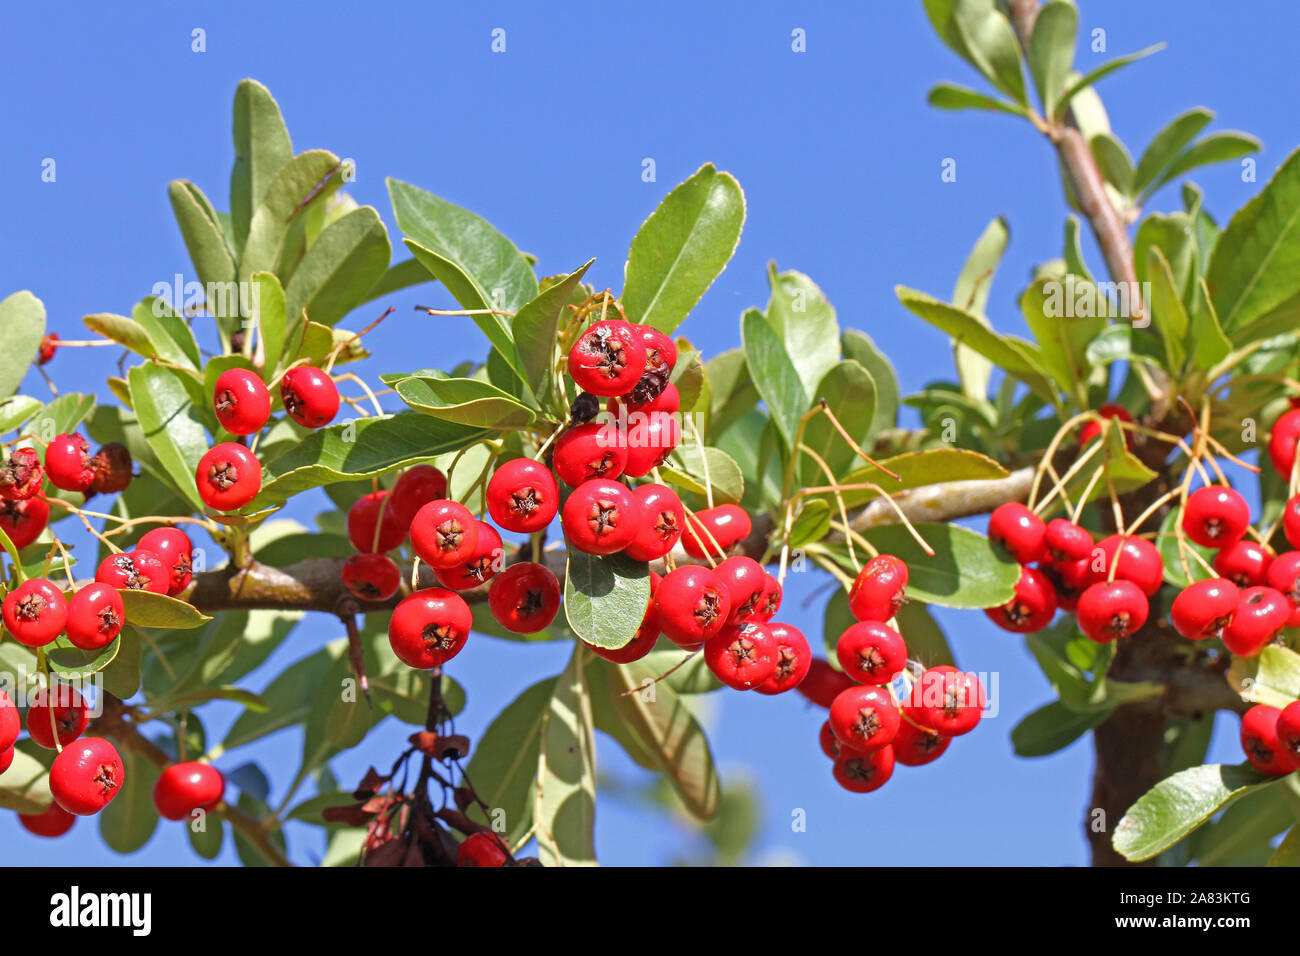 pyracantha or firethorn plant with bright red berries or pomes in autumn or fall in Italy related to cotoneaster and from the rosaceae family Stock Photo